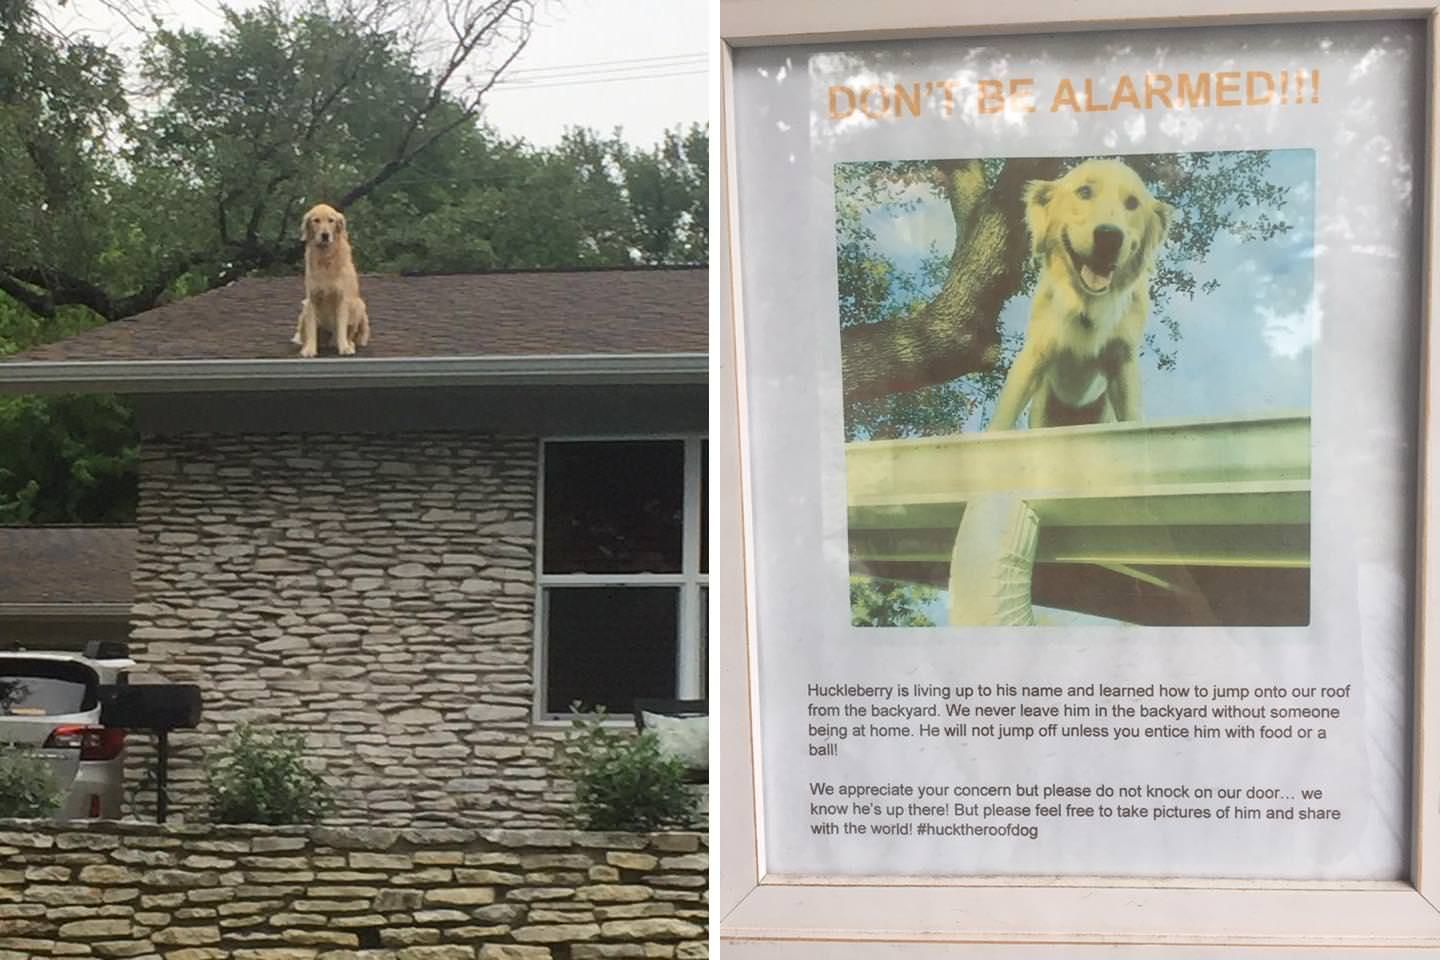 This Dog Has A Thing For Rooftops Apparentlyhttps I Imgur Com